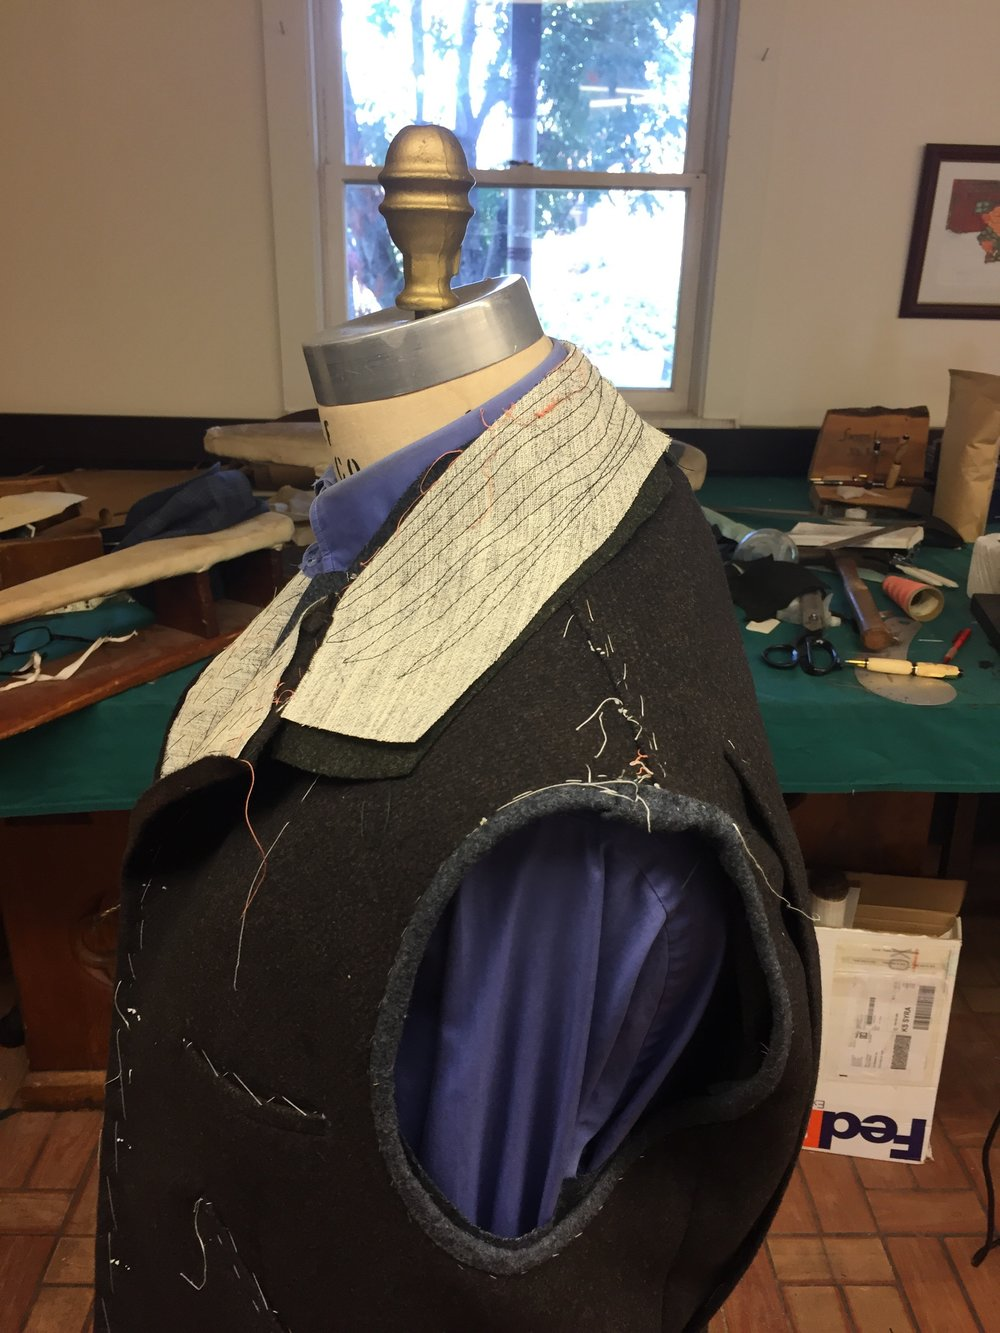 The collar has a 2 inch collar stand to be high on the neck. And when the collar is turned up it is very warm and practical.